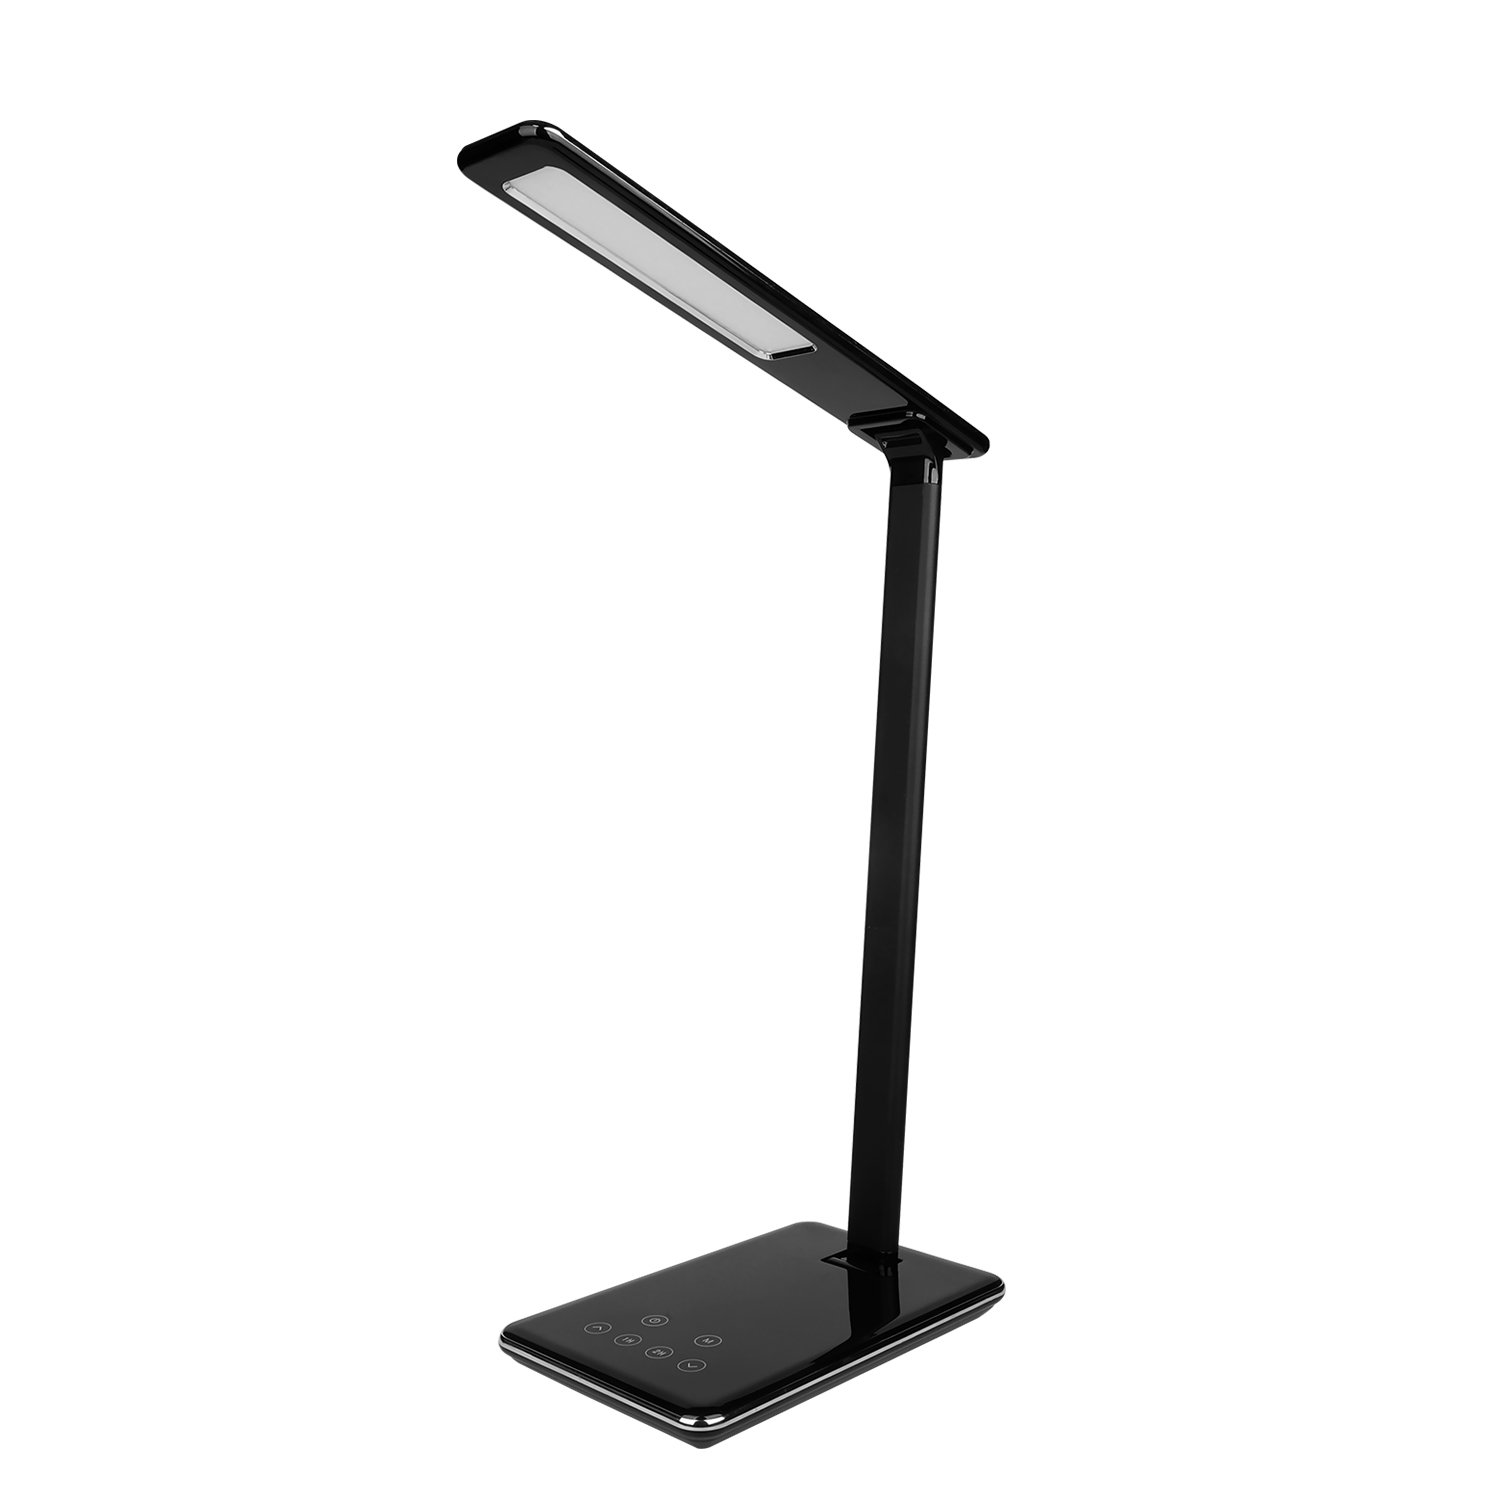 MACASA Led Desk Lamp 5W Dimmable Table Lamp with USB Charging Port,4 Color Temperatures,Touch Control,Timer Setting Memory Function Black